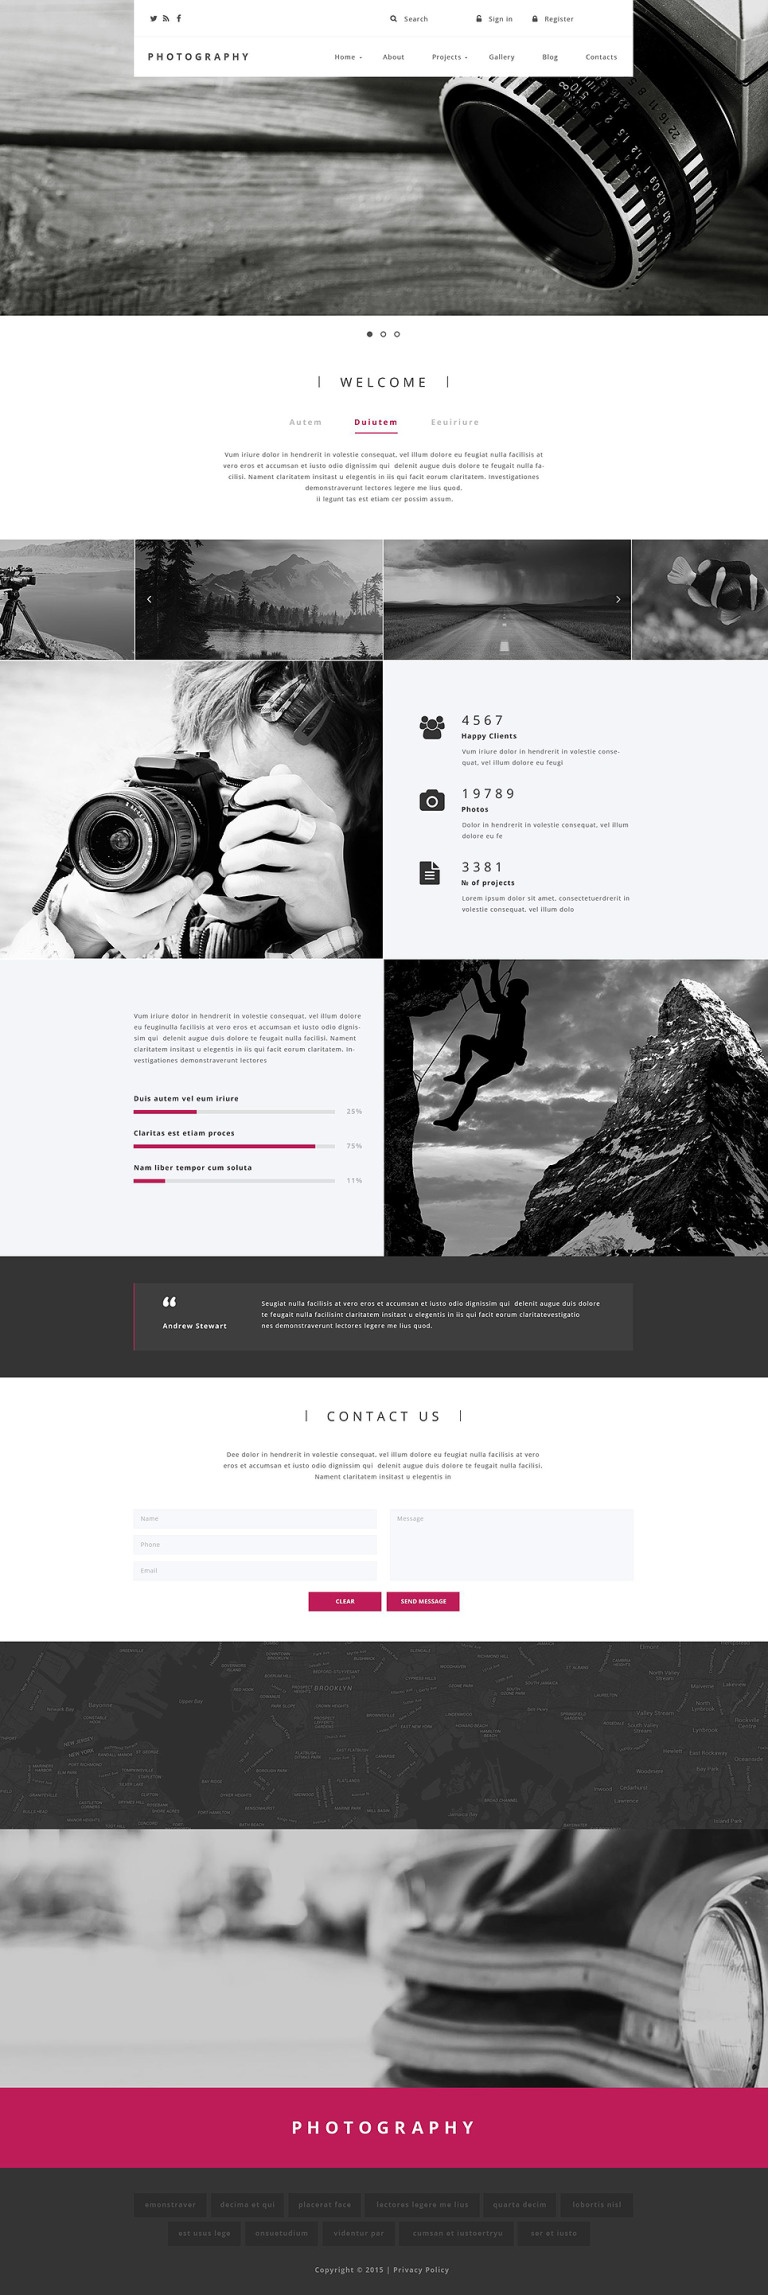 Photography Drupal Template New Screenshots BIG